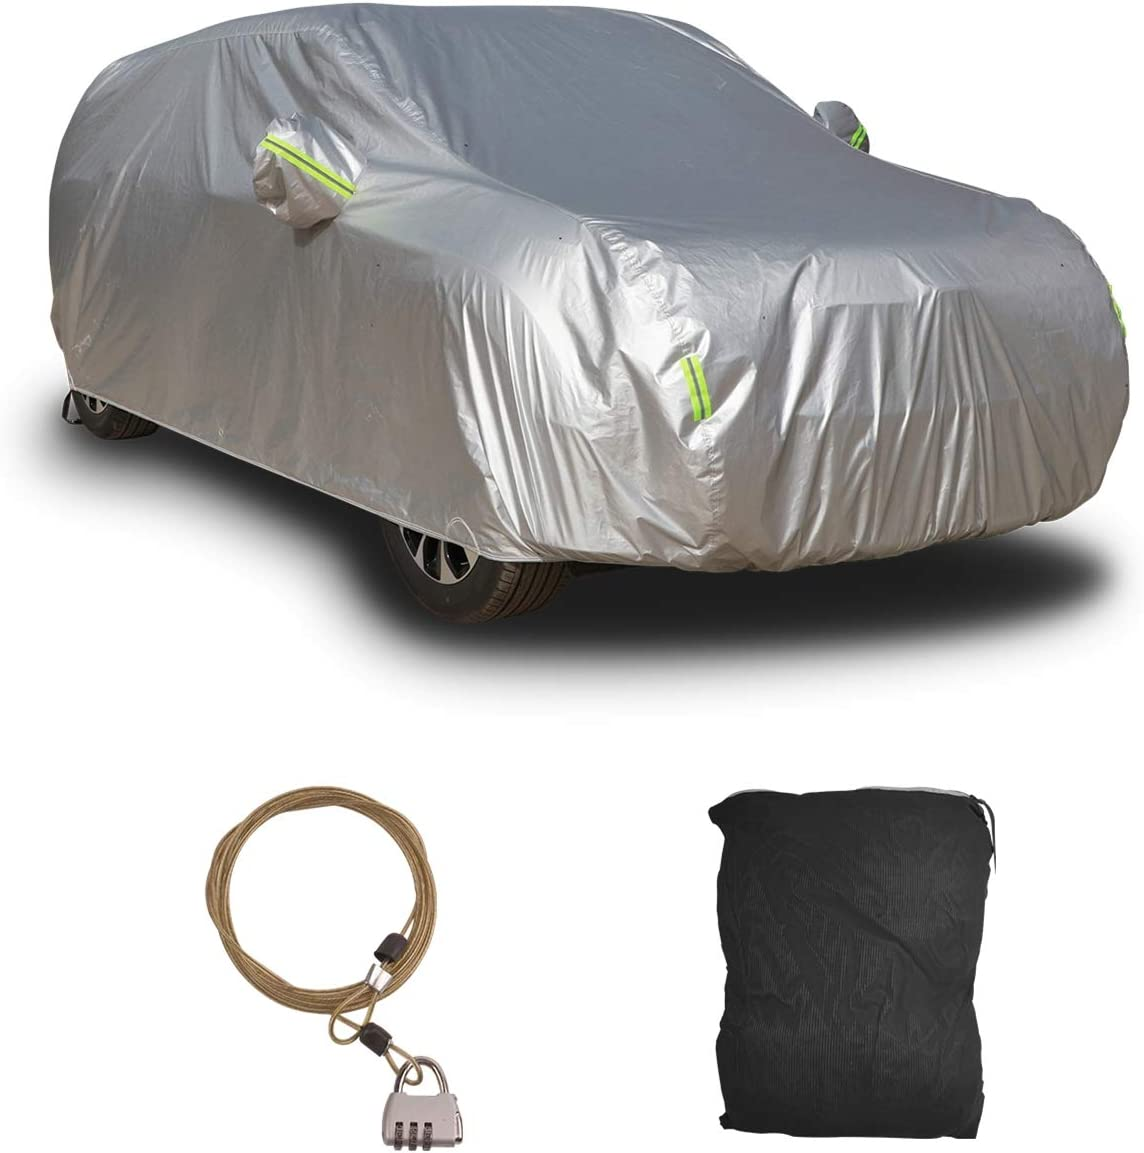 Shieldo Basic Car Cover with Buid-in Storage Bag Door Zipper Windproof Straps and Buckles 100/% Waterproof All Season Weather-Proof Fit 196-210 inches SUV